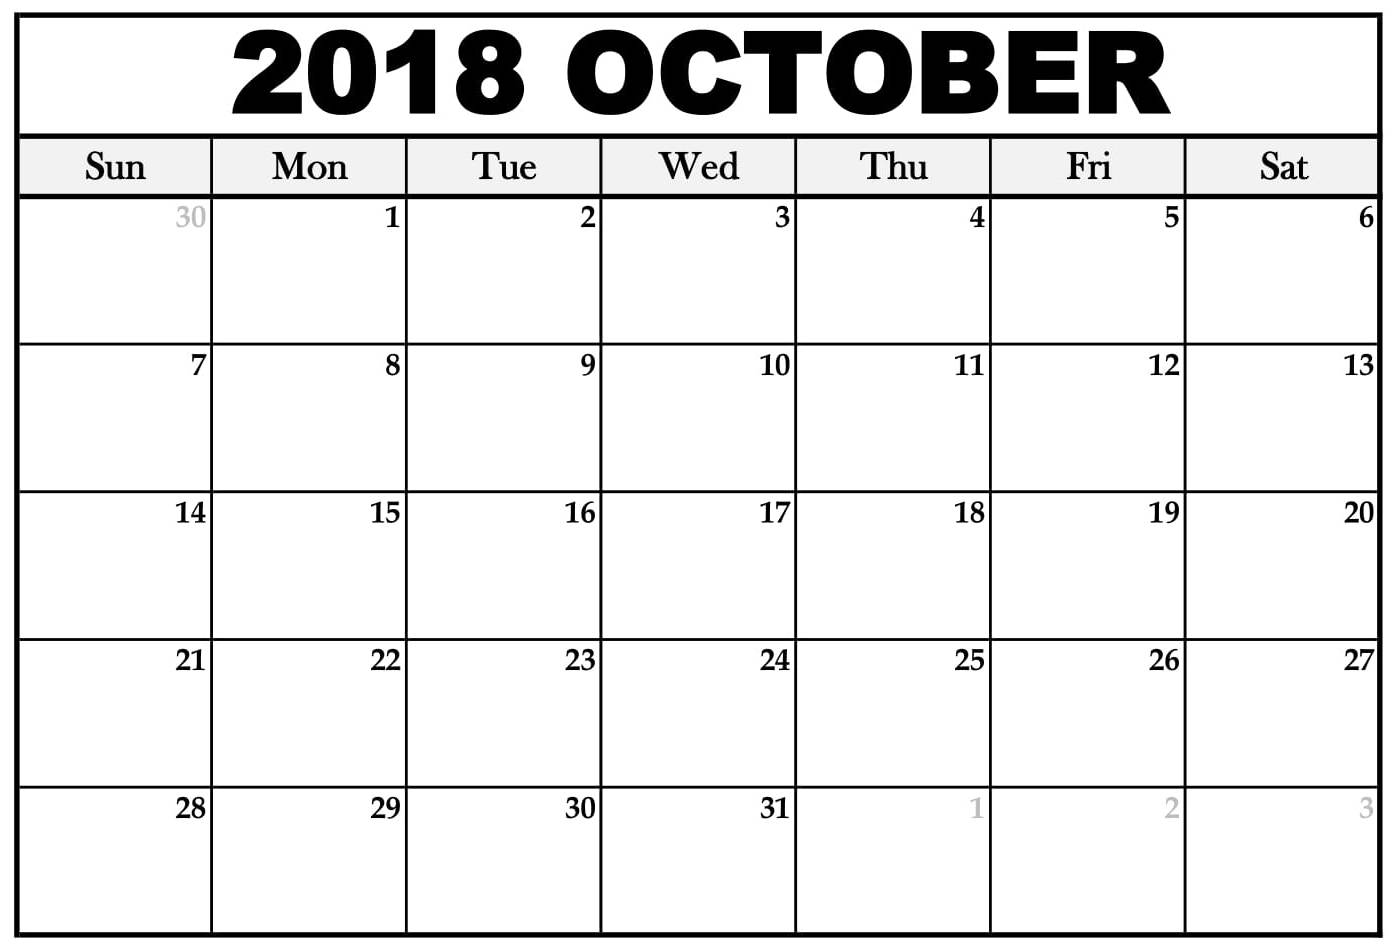 October 2018 Calendar With Holidays Malaysia